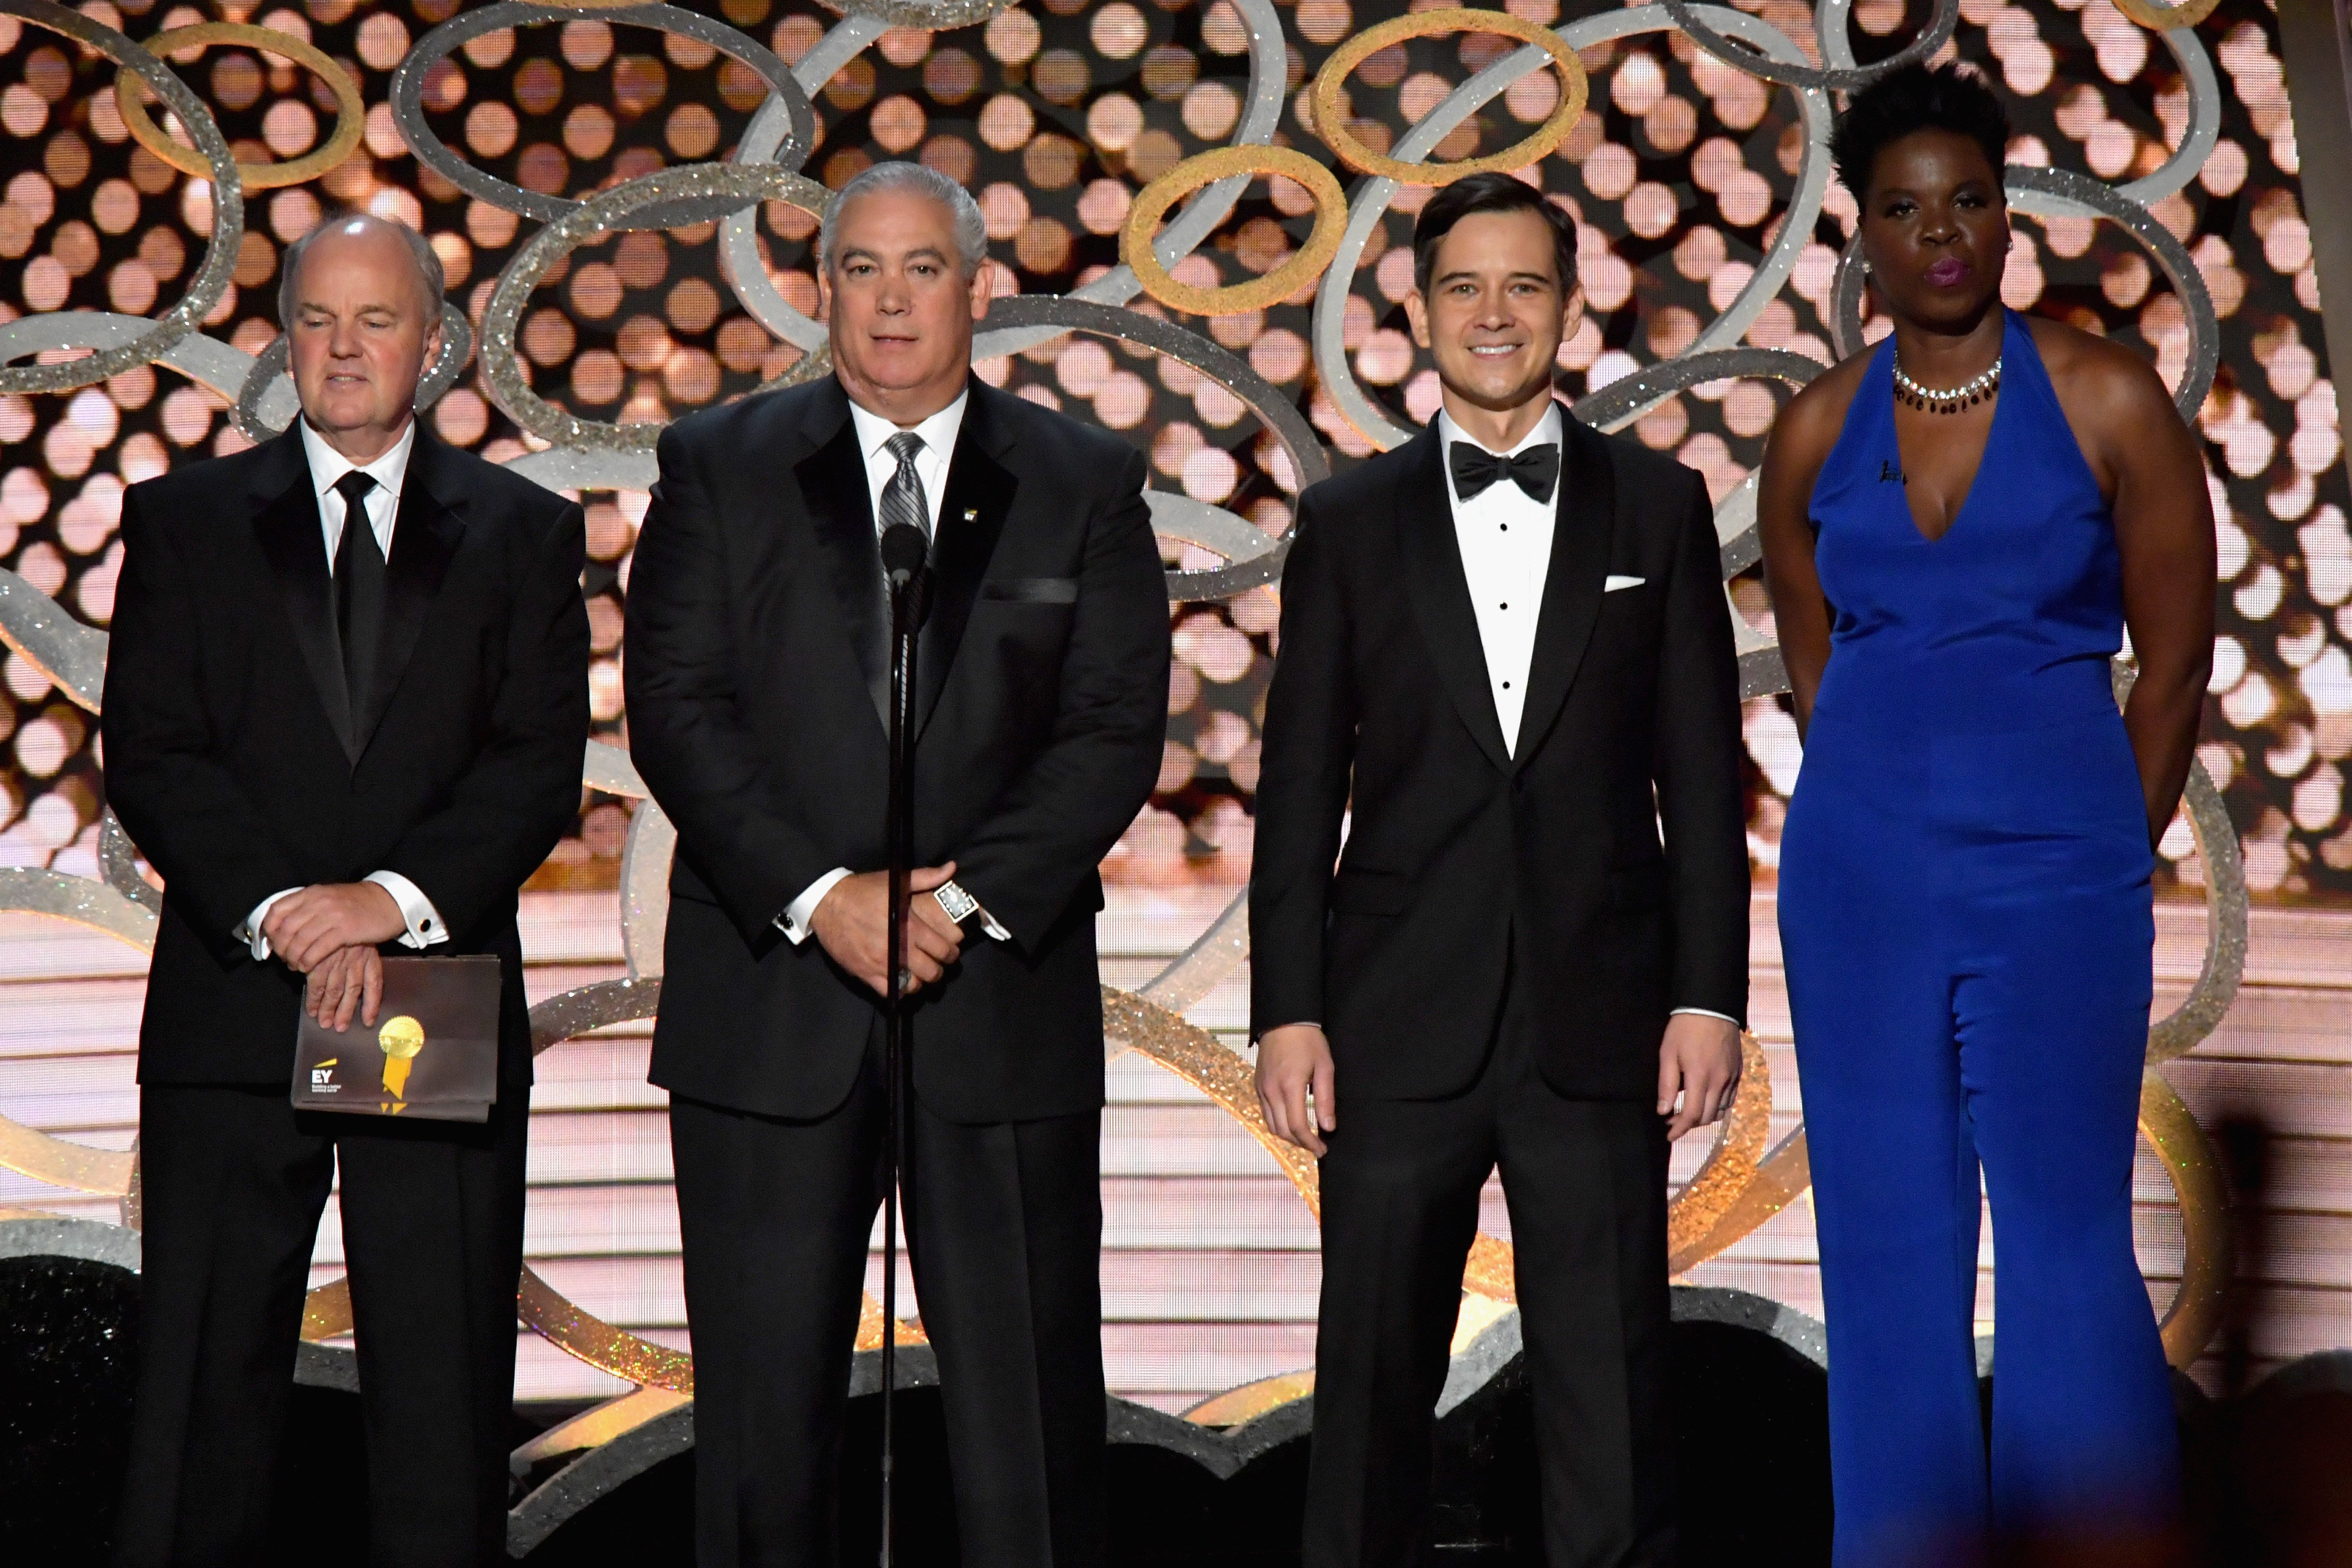 Leslie Jones and representatives of Ernst & Young speak onstage during the 68th Annual Primetime Emmy Awards at Microsoft Theater on September 18, 2016 in Los Angeles